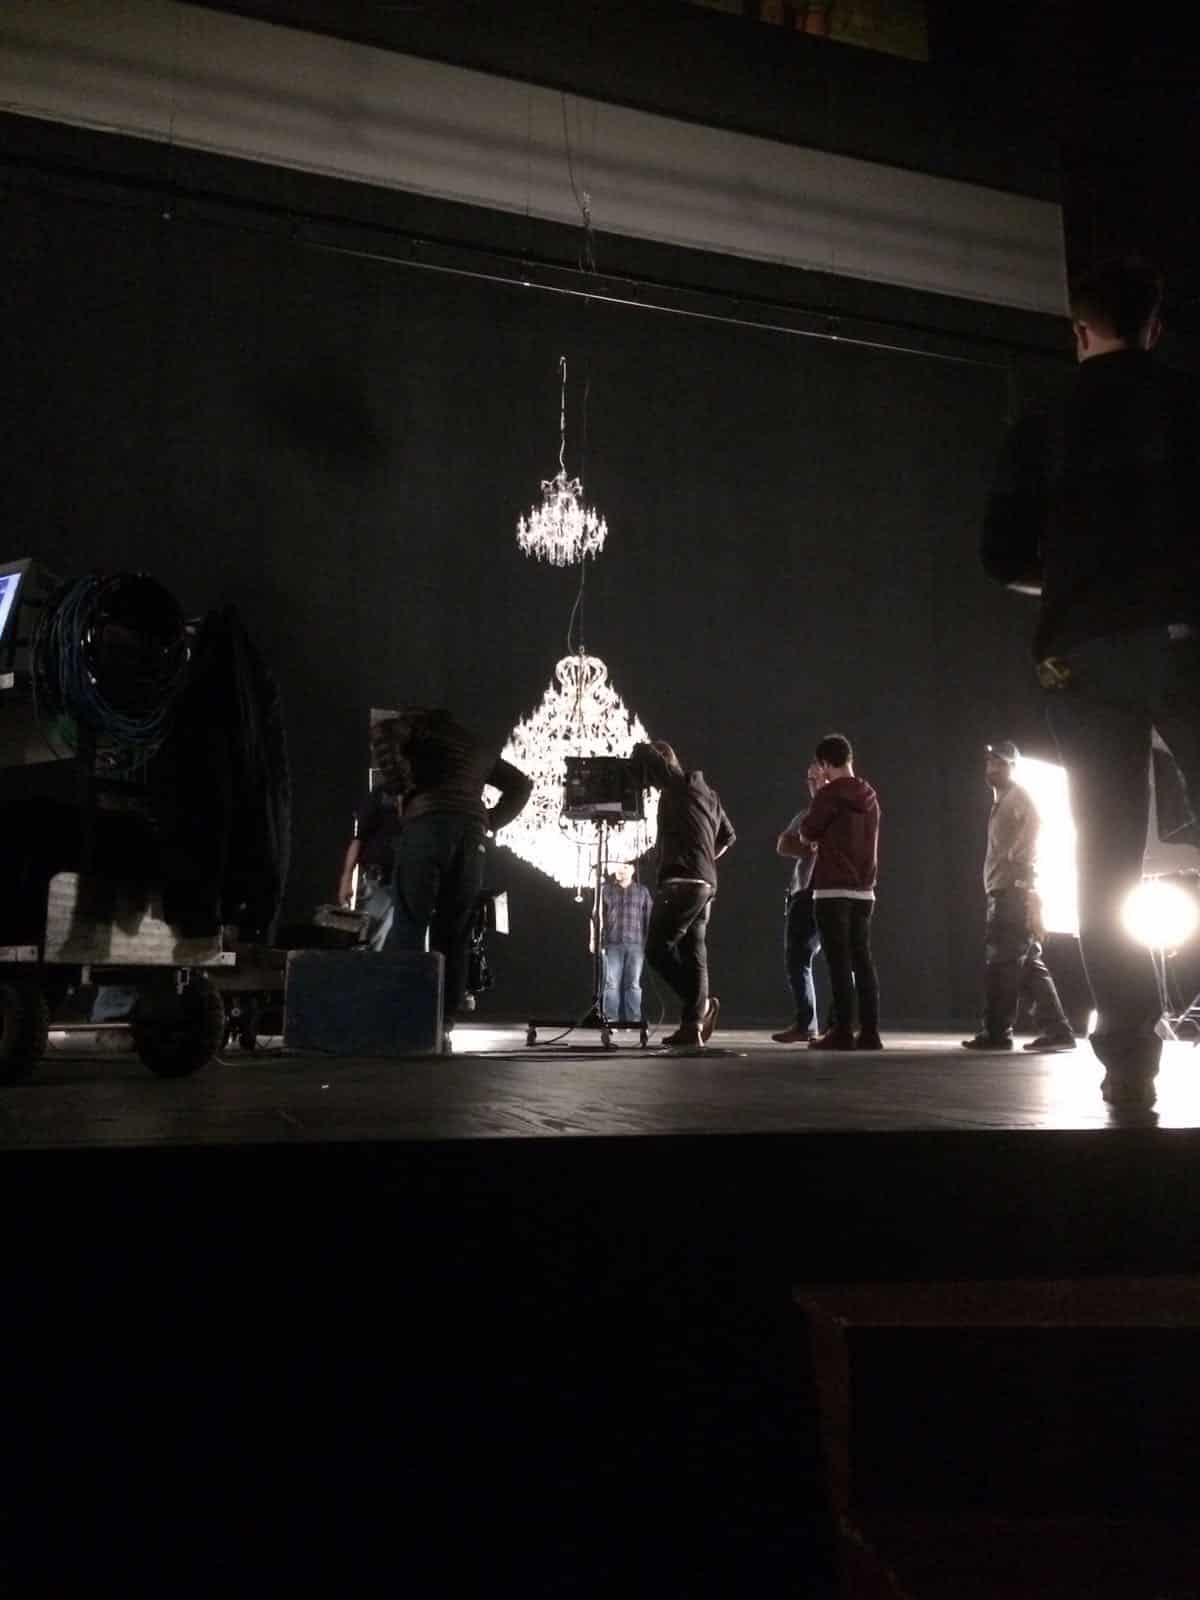 Decoration for film with wonderful chandeliers